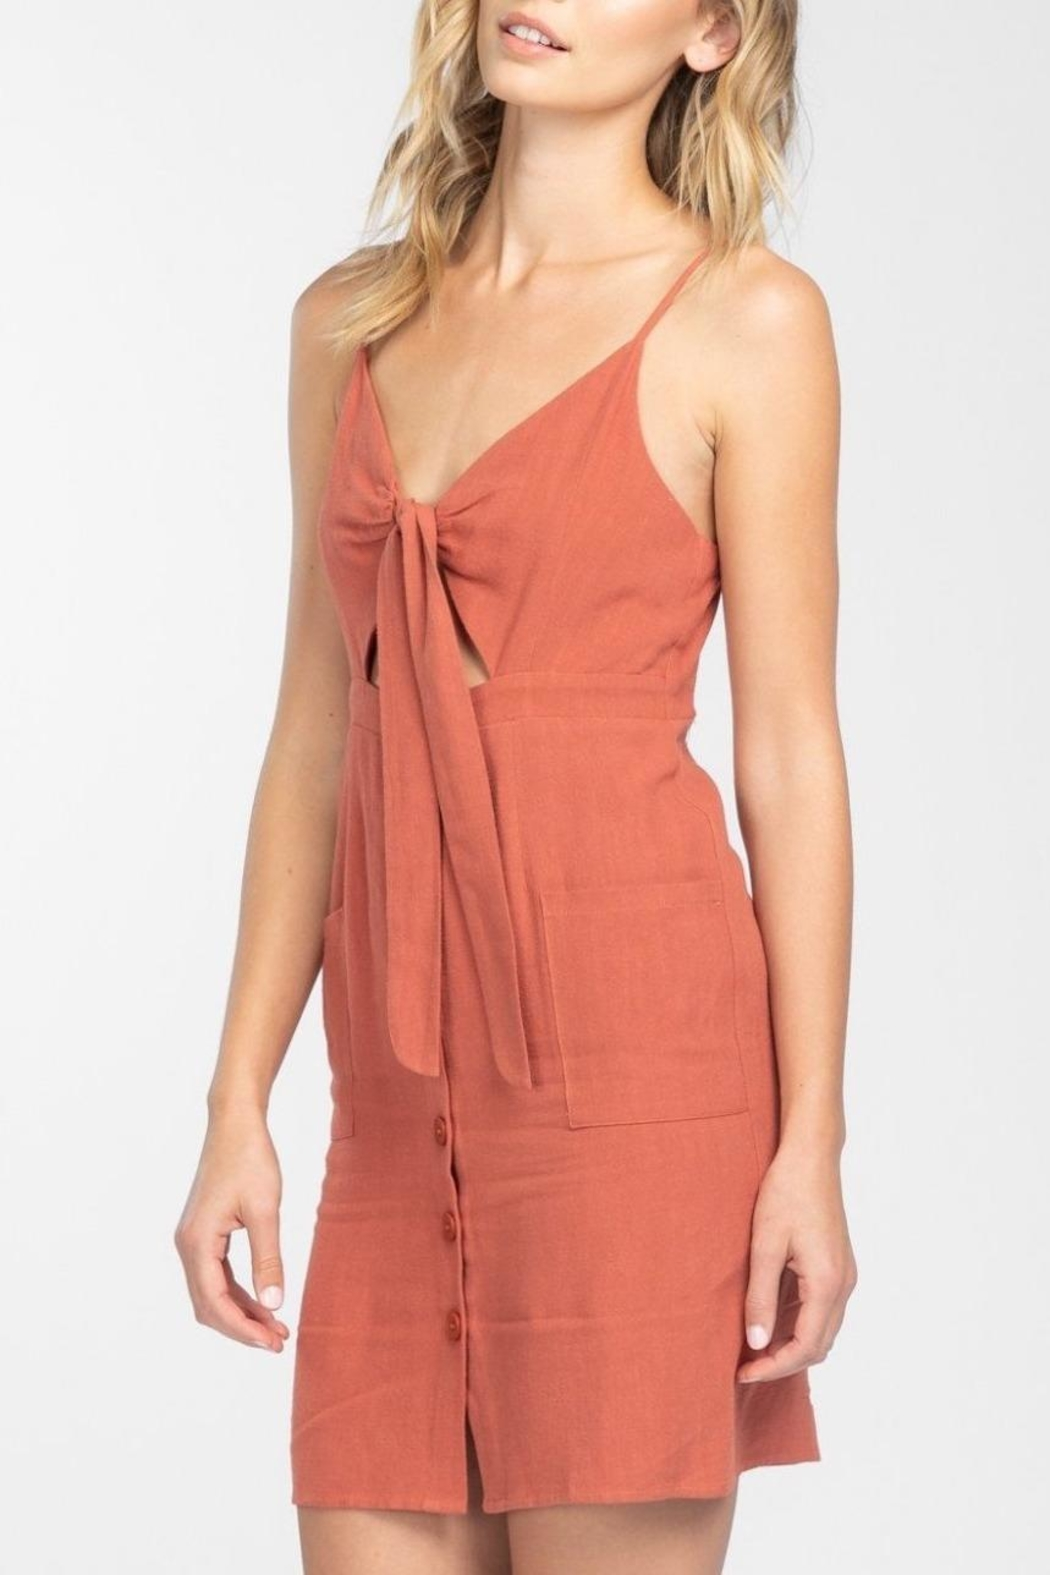 Everly Button Front-Tie Mini-Dress - Front Full Image